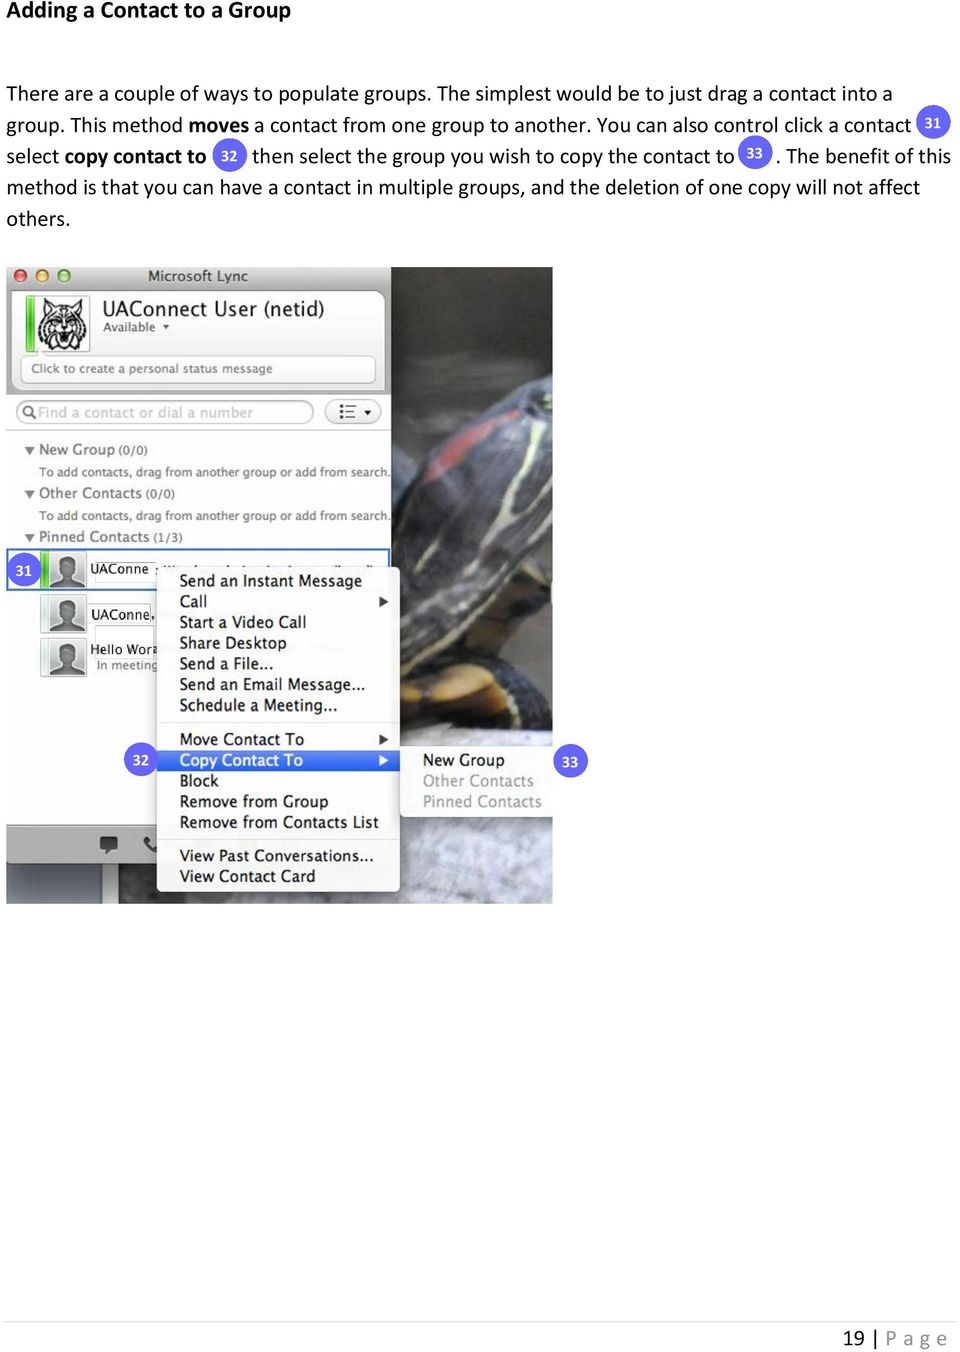 You can also control click a contact 31 select copy contact to 32 then select the group you wish to copy the